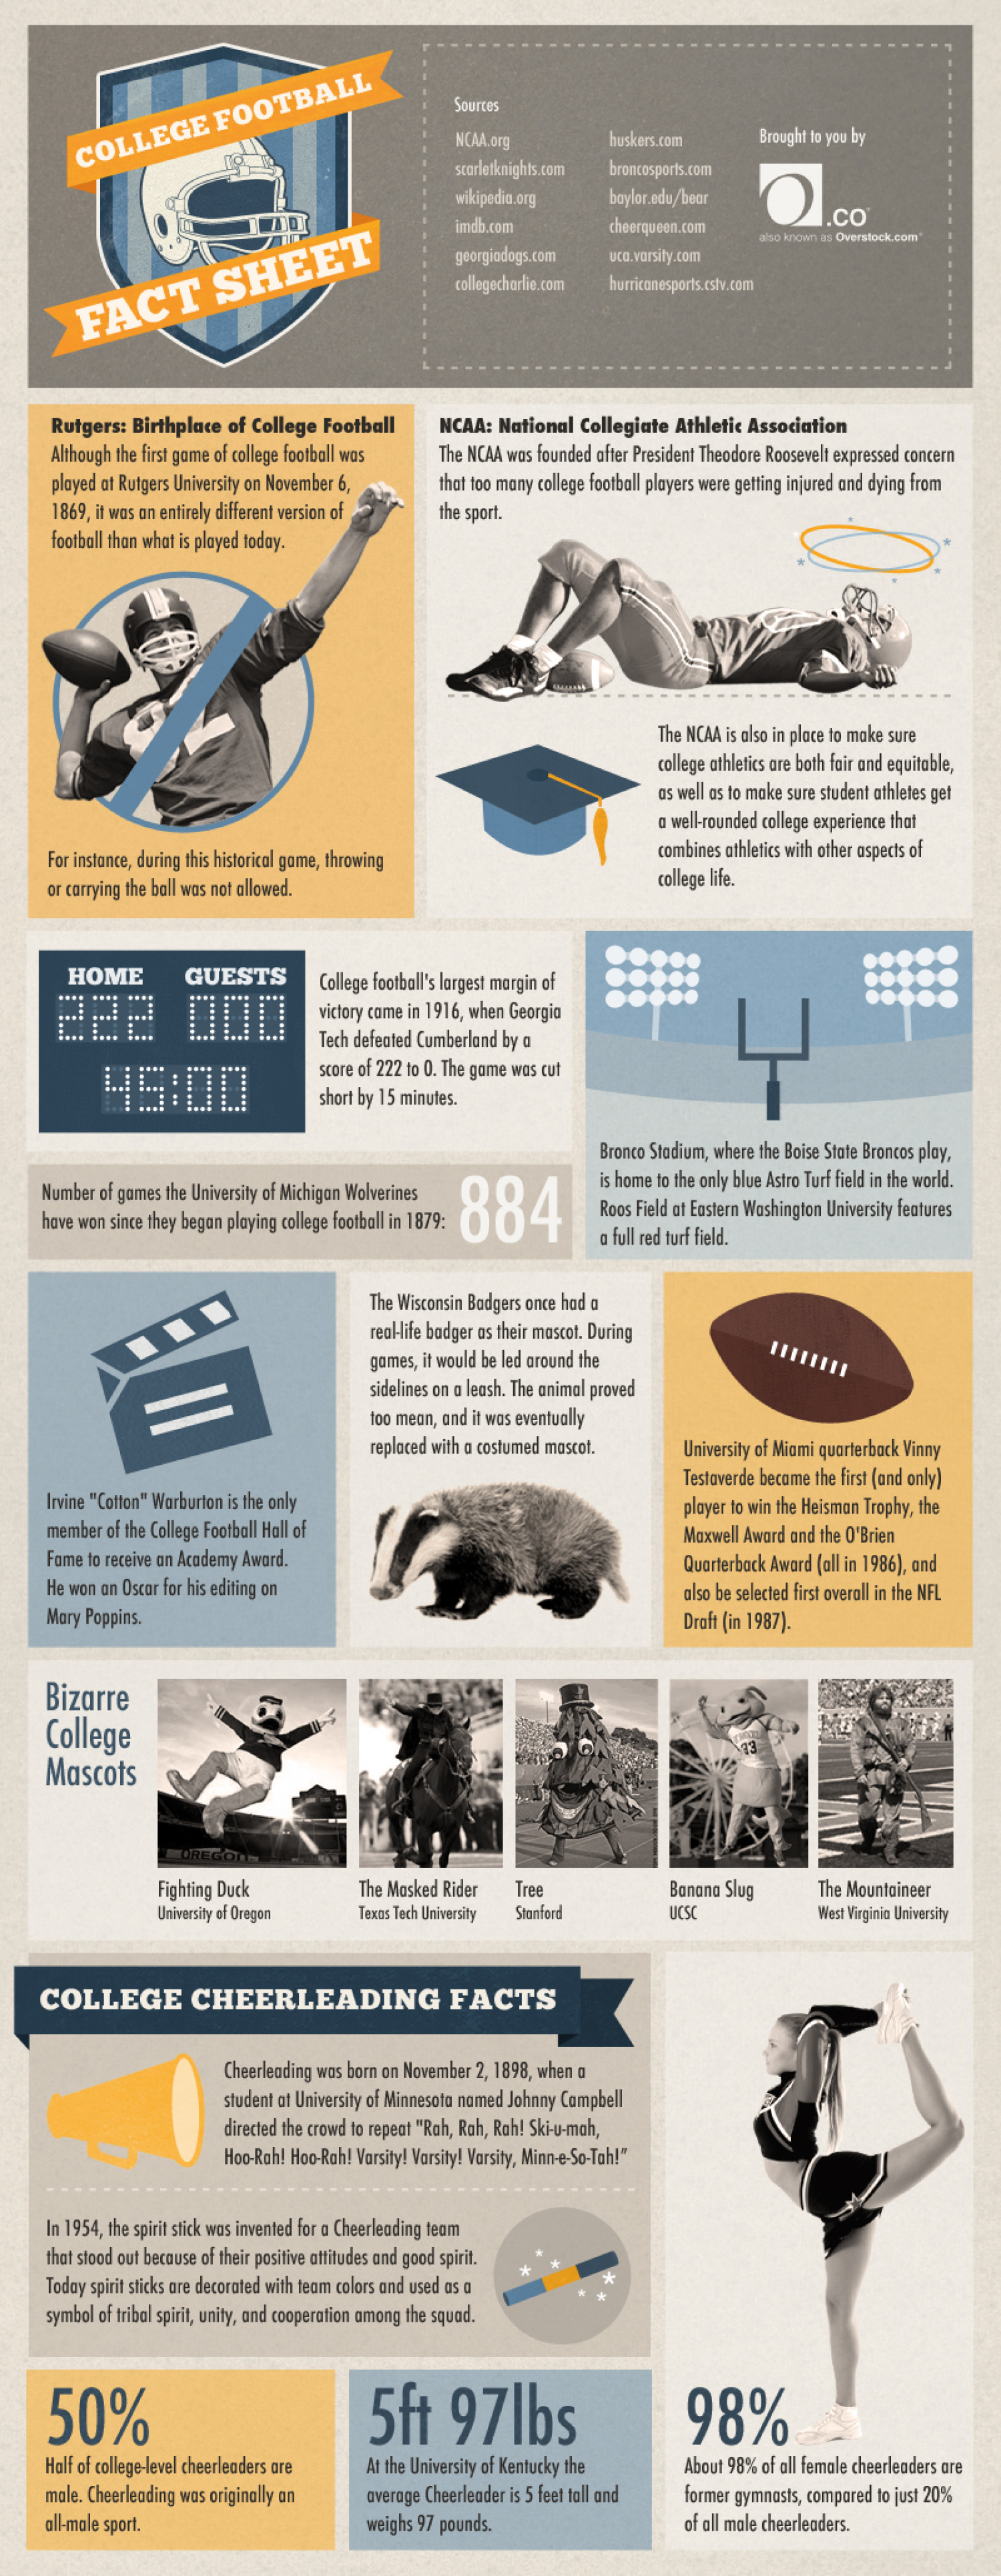 Rah, Rah, Rah! It's College Football Infographic